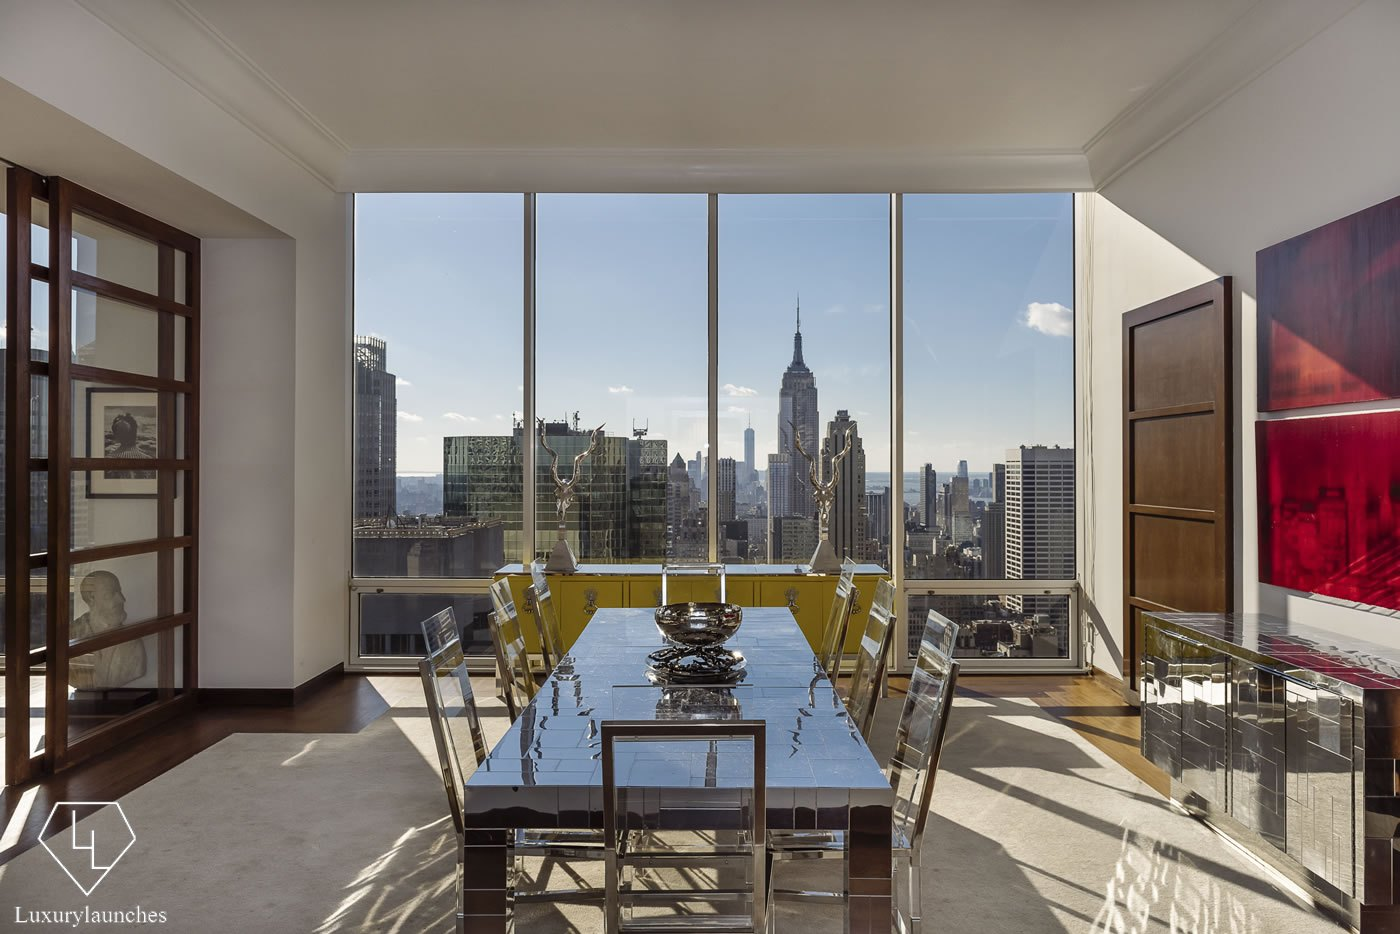 Gucci S 38 Million Penthouse In Manhattan Is Up For Sale